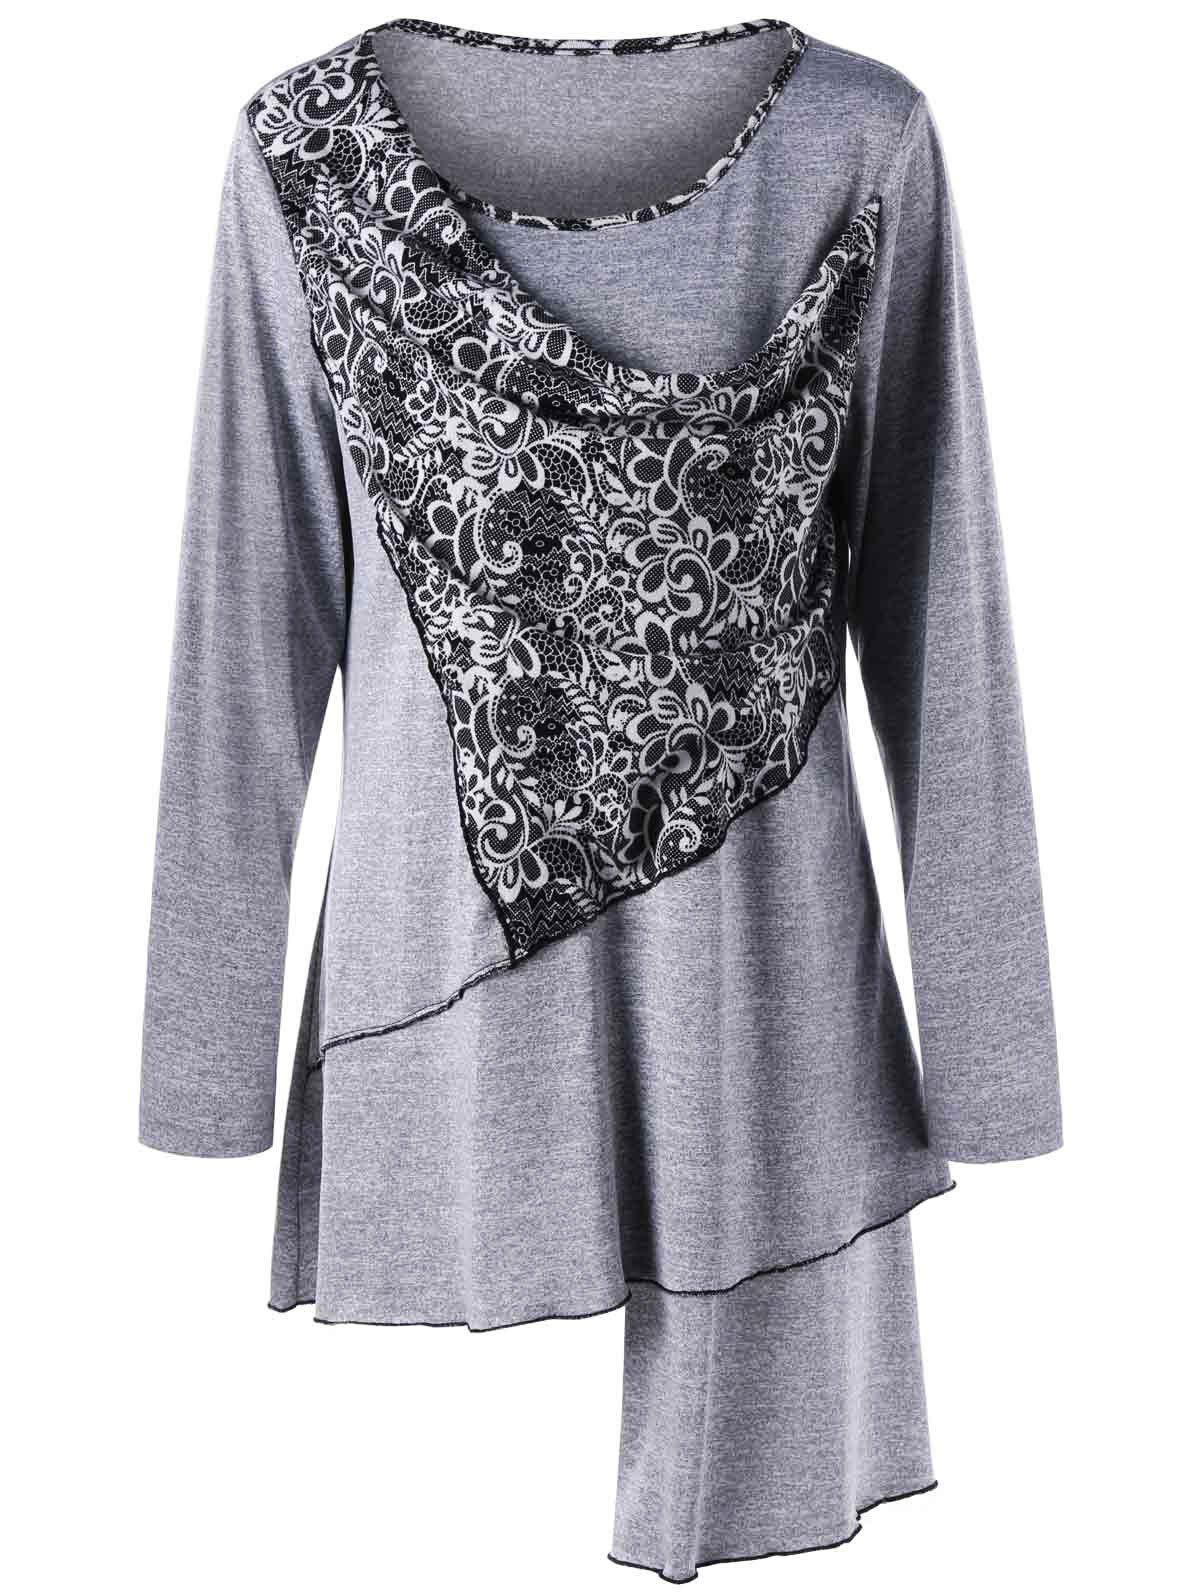 Plus Size Bandana Floral Asymmetric Tunic TopWOMEN<br><br>Size: 4XL; Color: LIGHT GRAY; Material: Polyester,Spandex; Shirt Length: Long; Sleeve Length: Full; Collar: Scoop Neck; Style: Casual; Season: Fall,Spring; Pattern Type: Floral; Weight: 0.3100kg; Package Contents: 1 x Top;